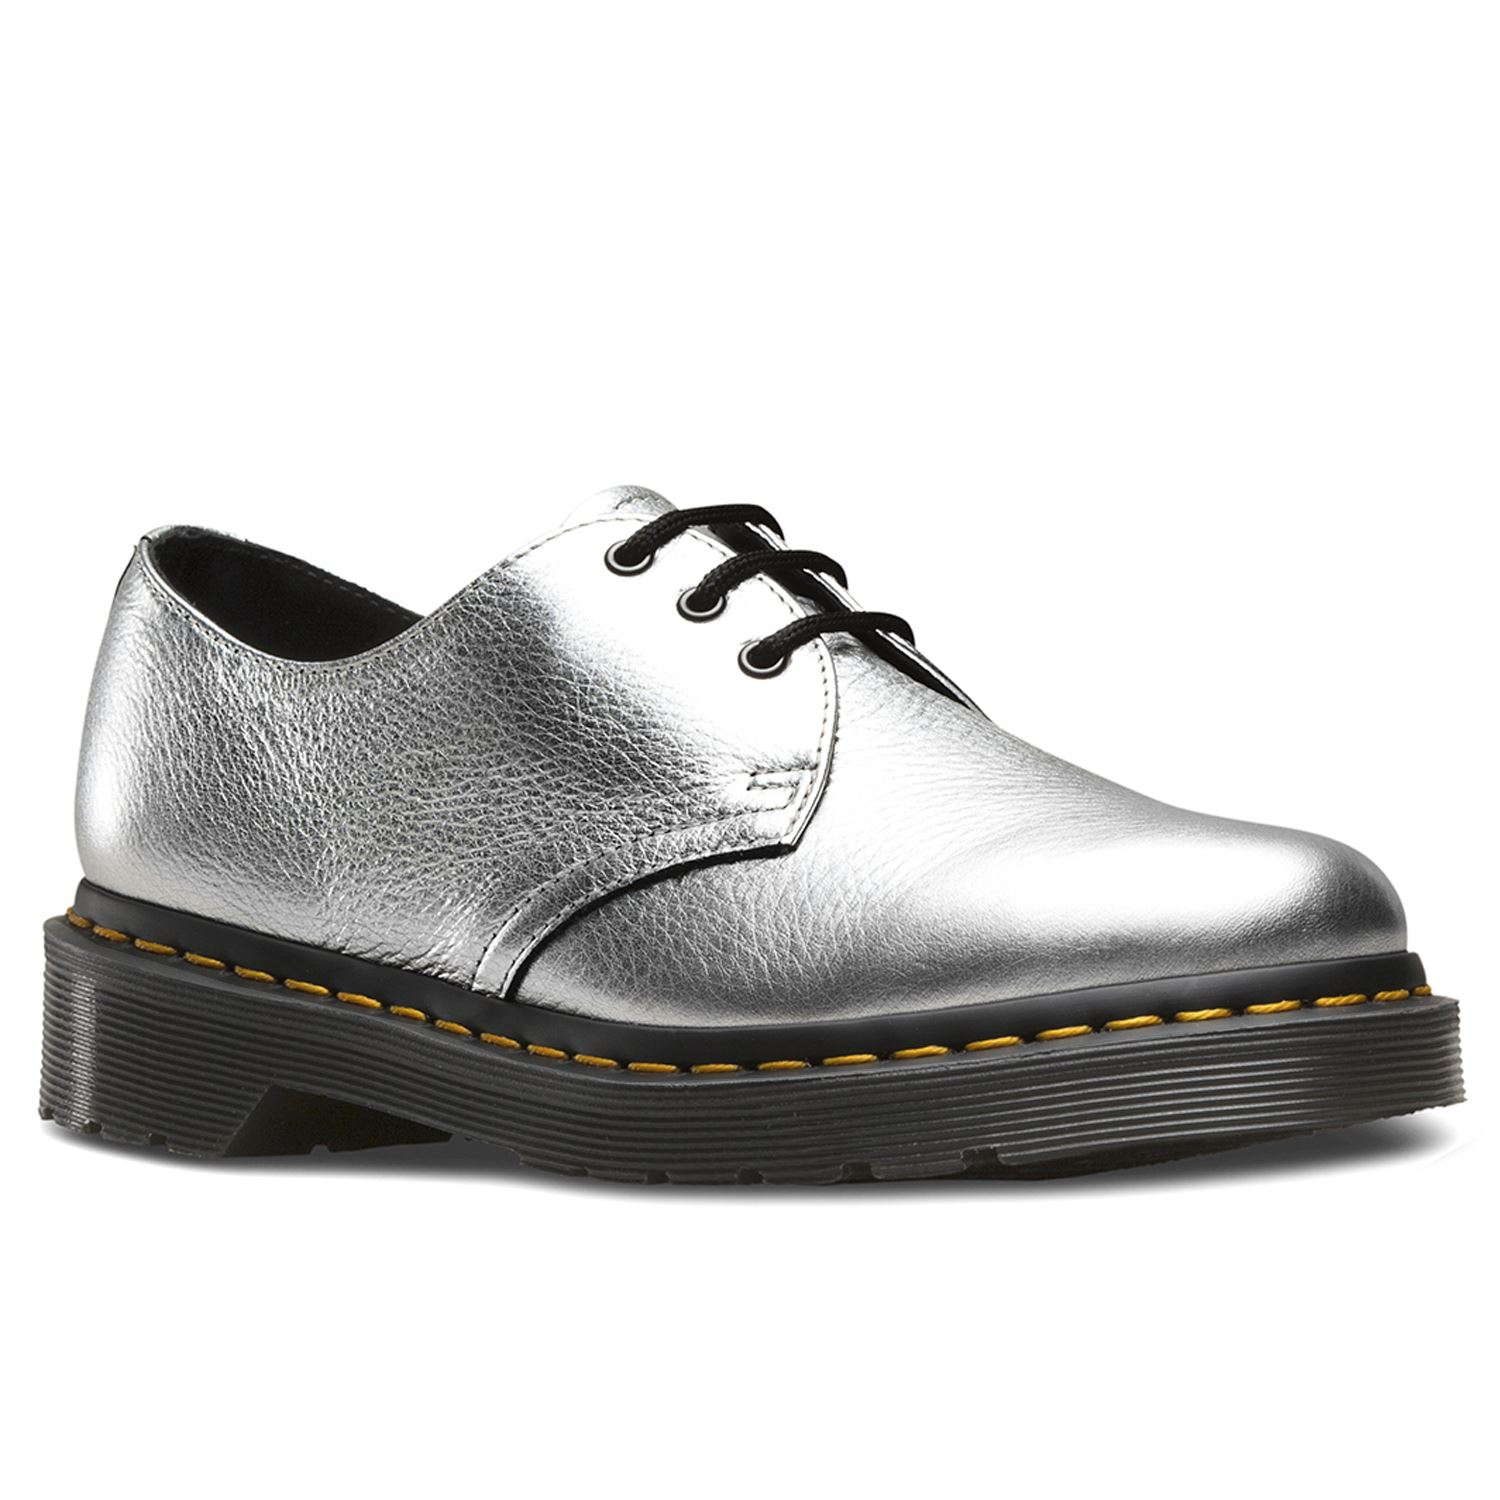 Details about Dr.Martens 1461 Metallic Silver Womens Casual Oxford Shoes  Textured Leather 762f7fbe0acc